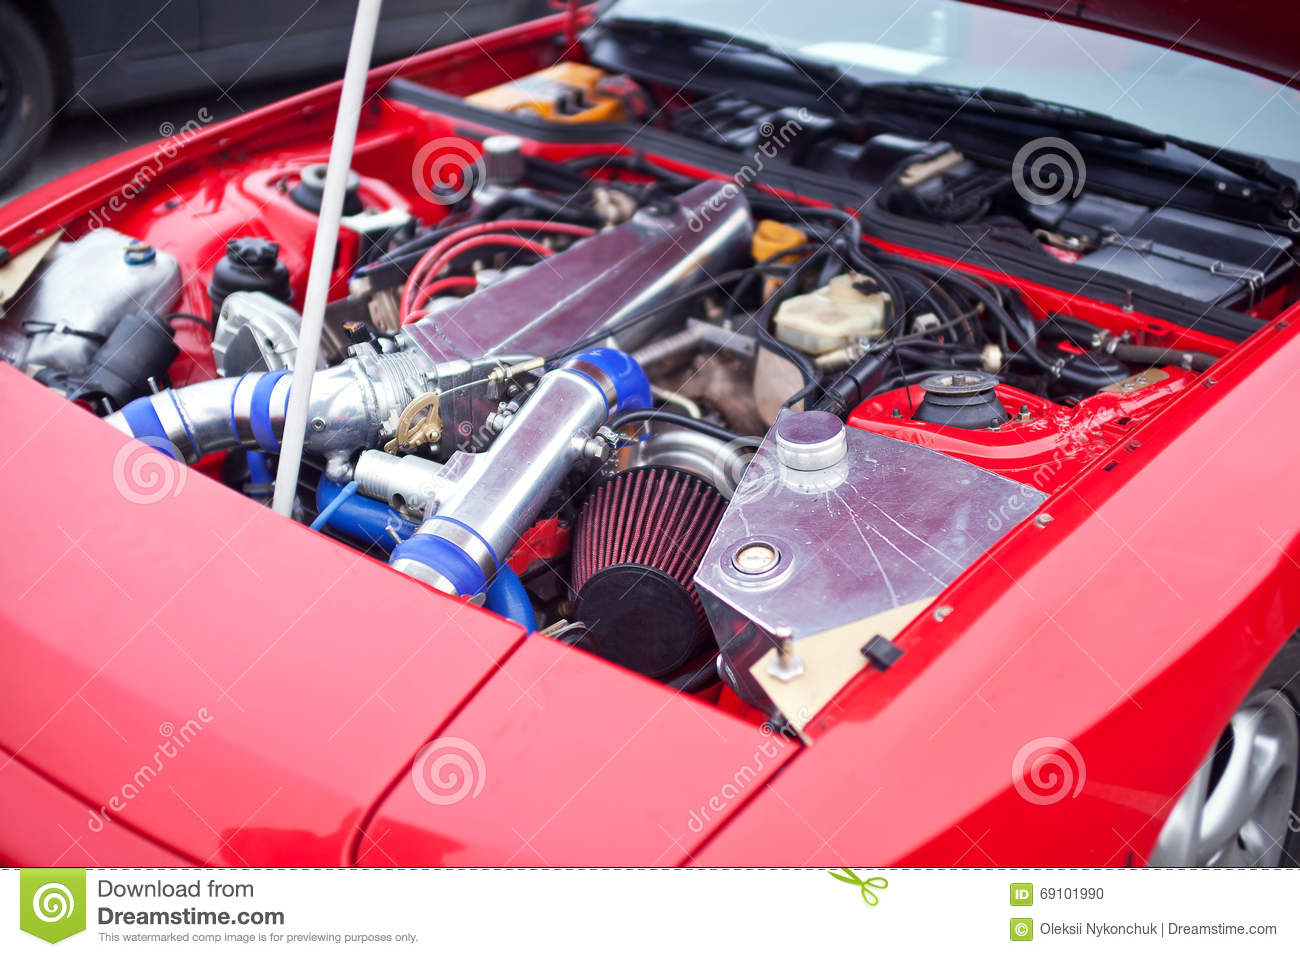 Engine of the drift car